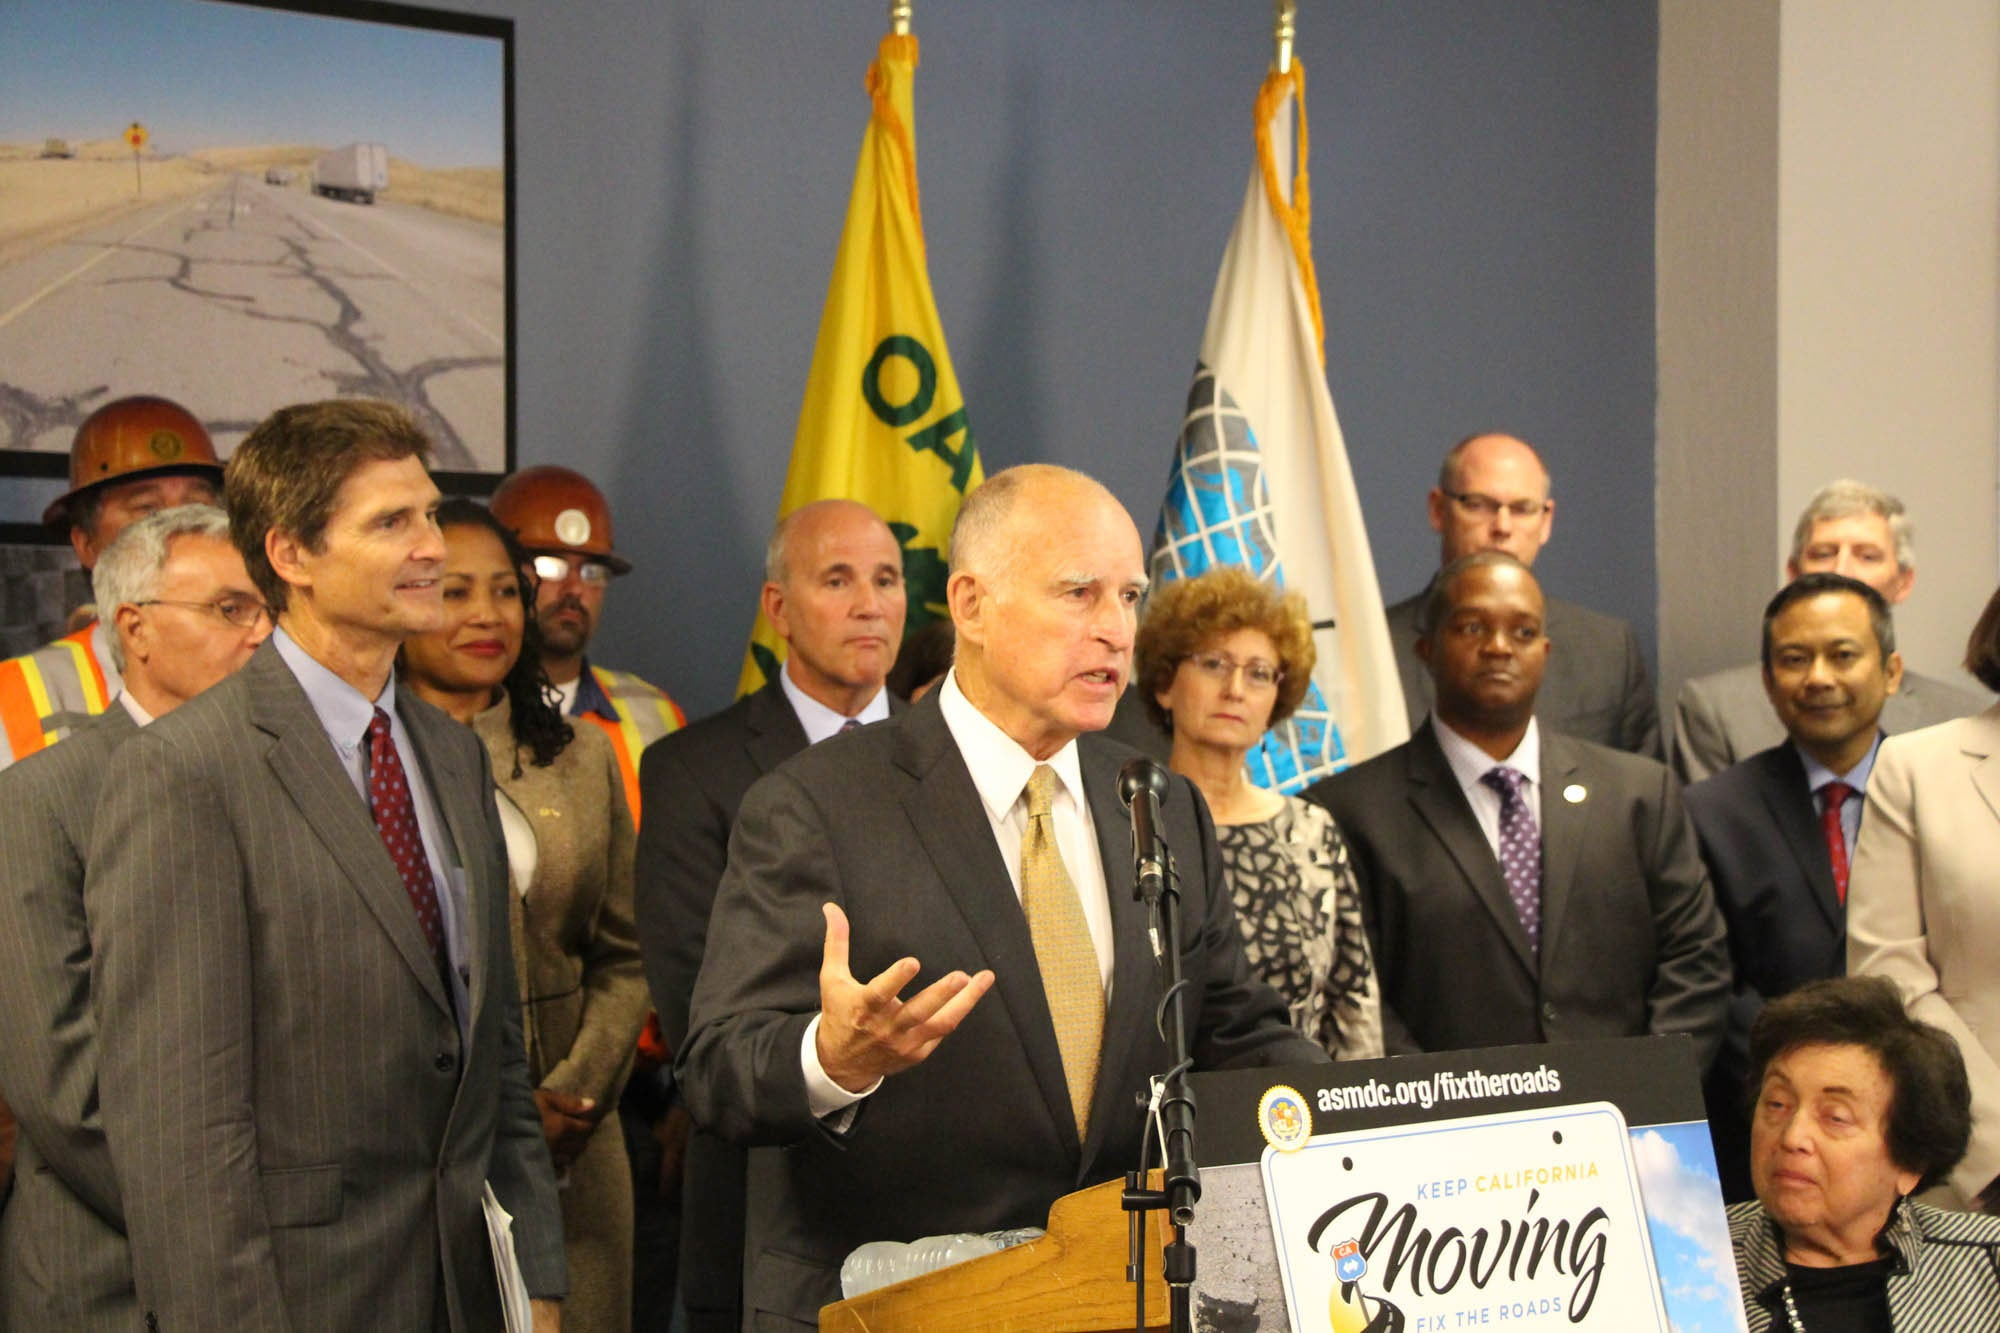 Governor Brown urges bipartisan support to fund road repairs at a news conference at the port of Oakland. (Photo: John Perry/Port of Oakland)